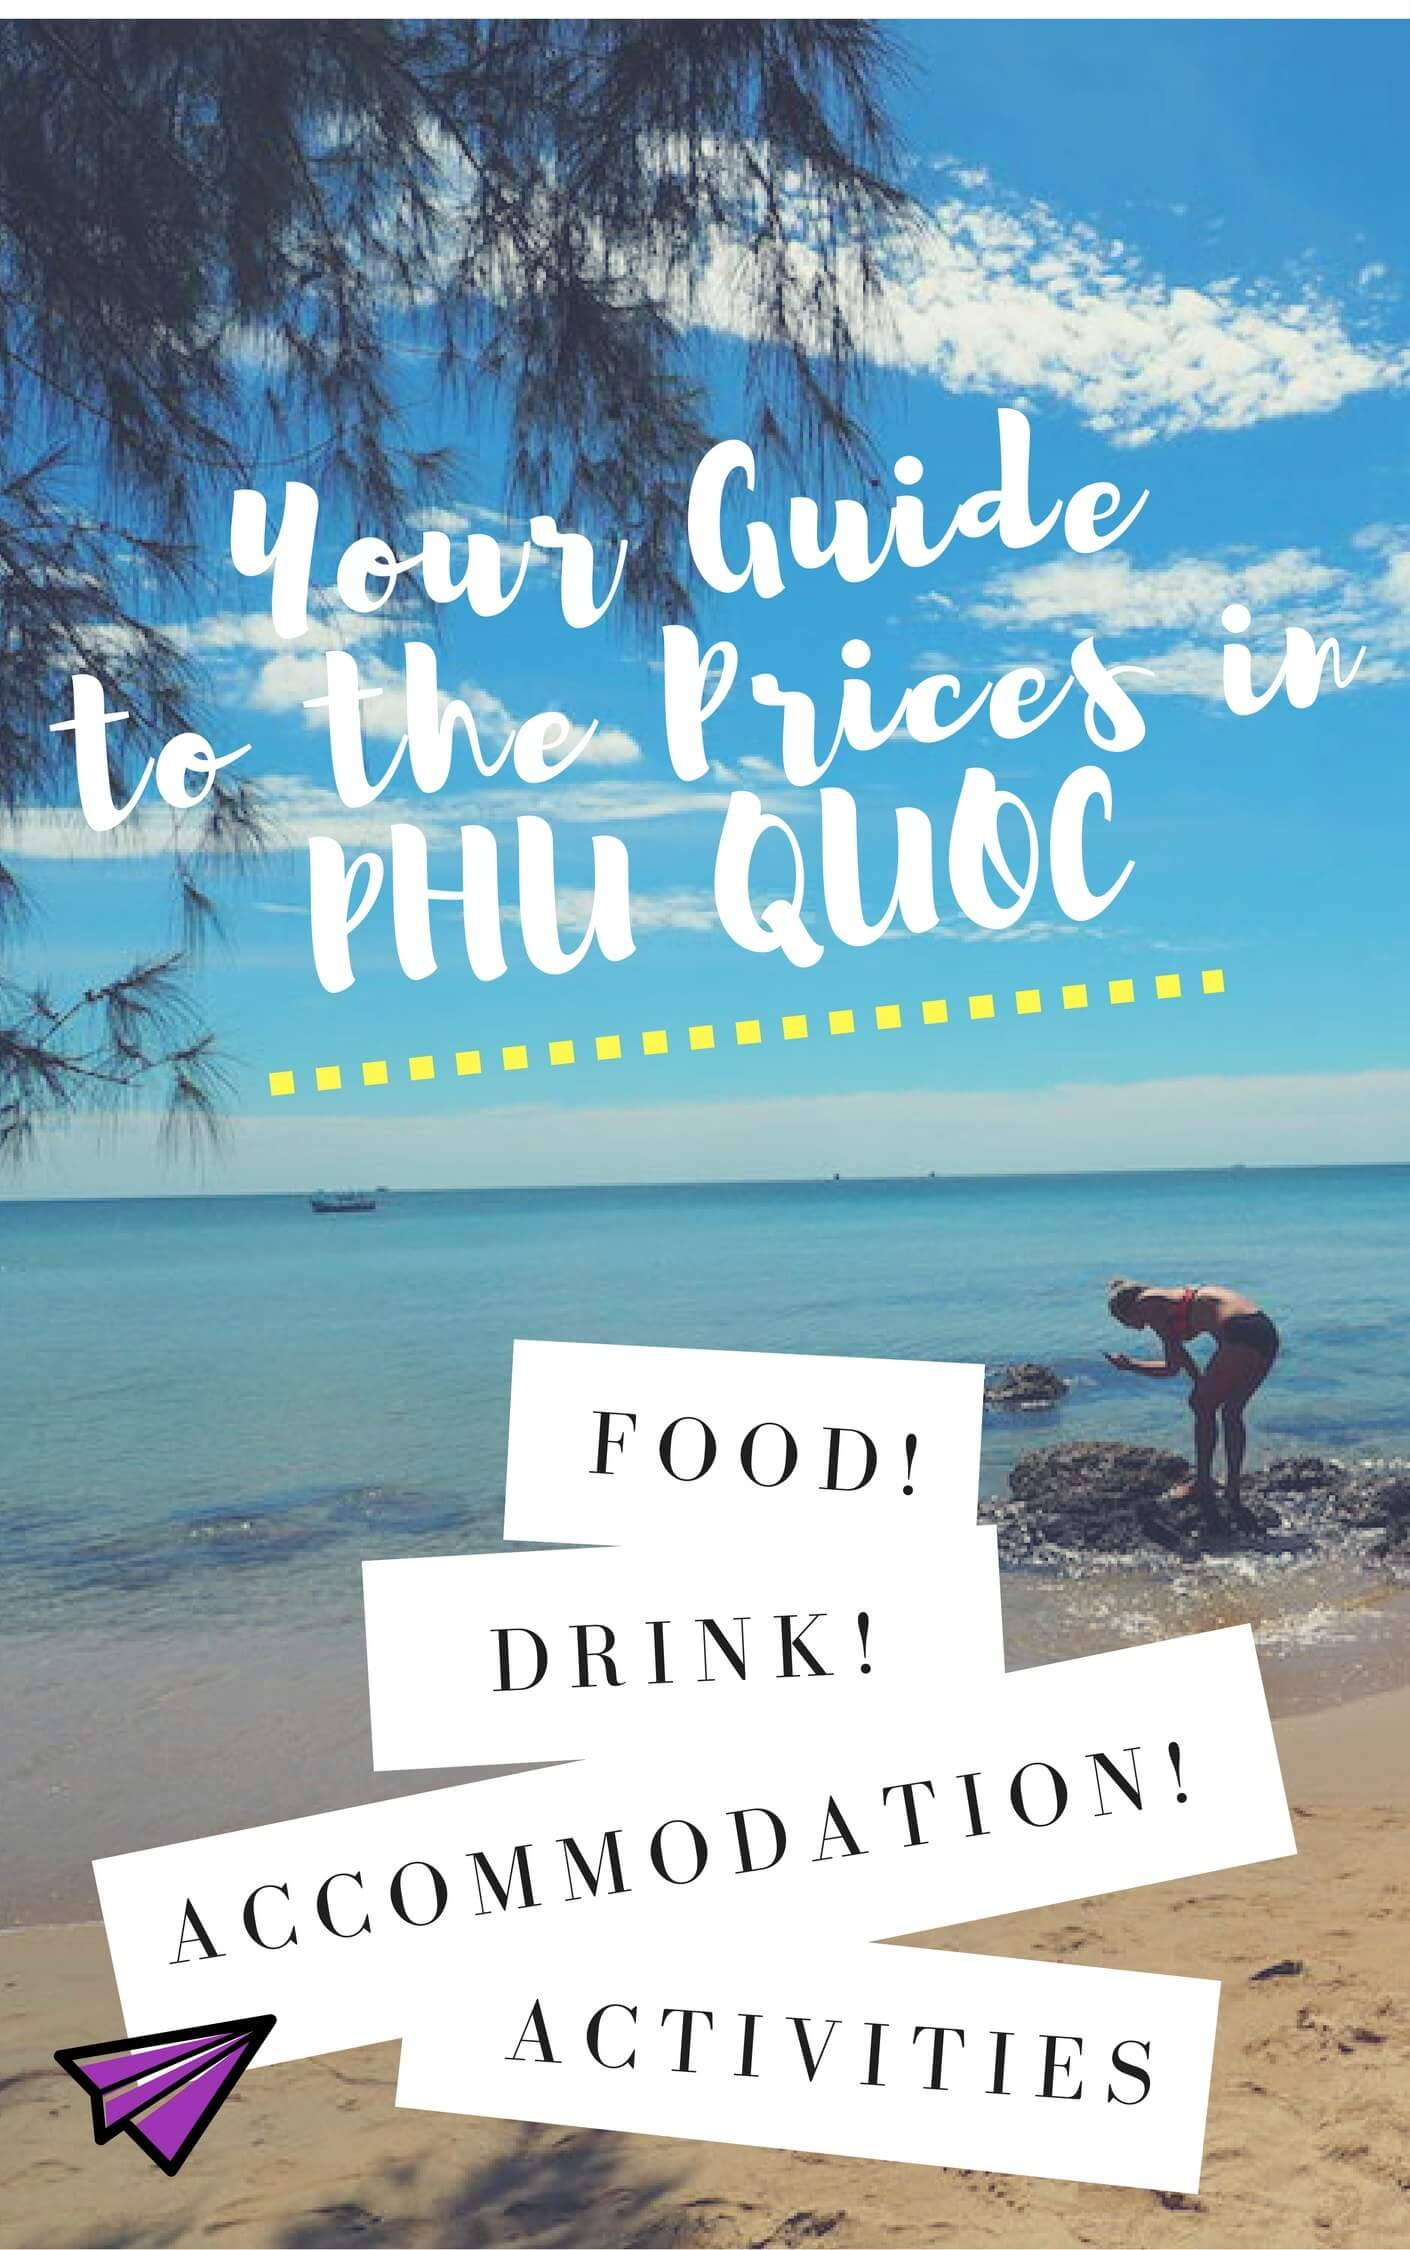 Cost of Phu Quoc